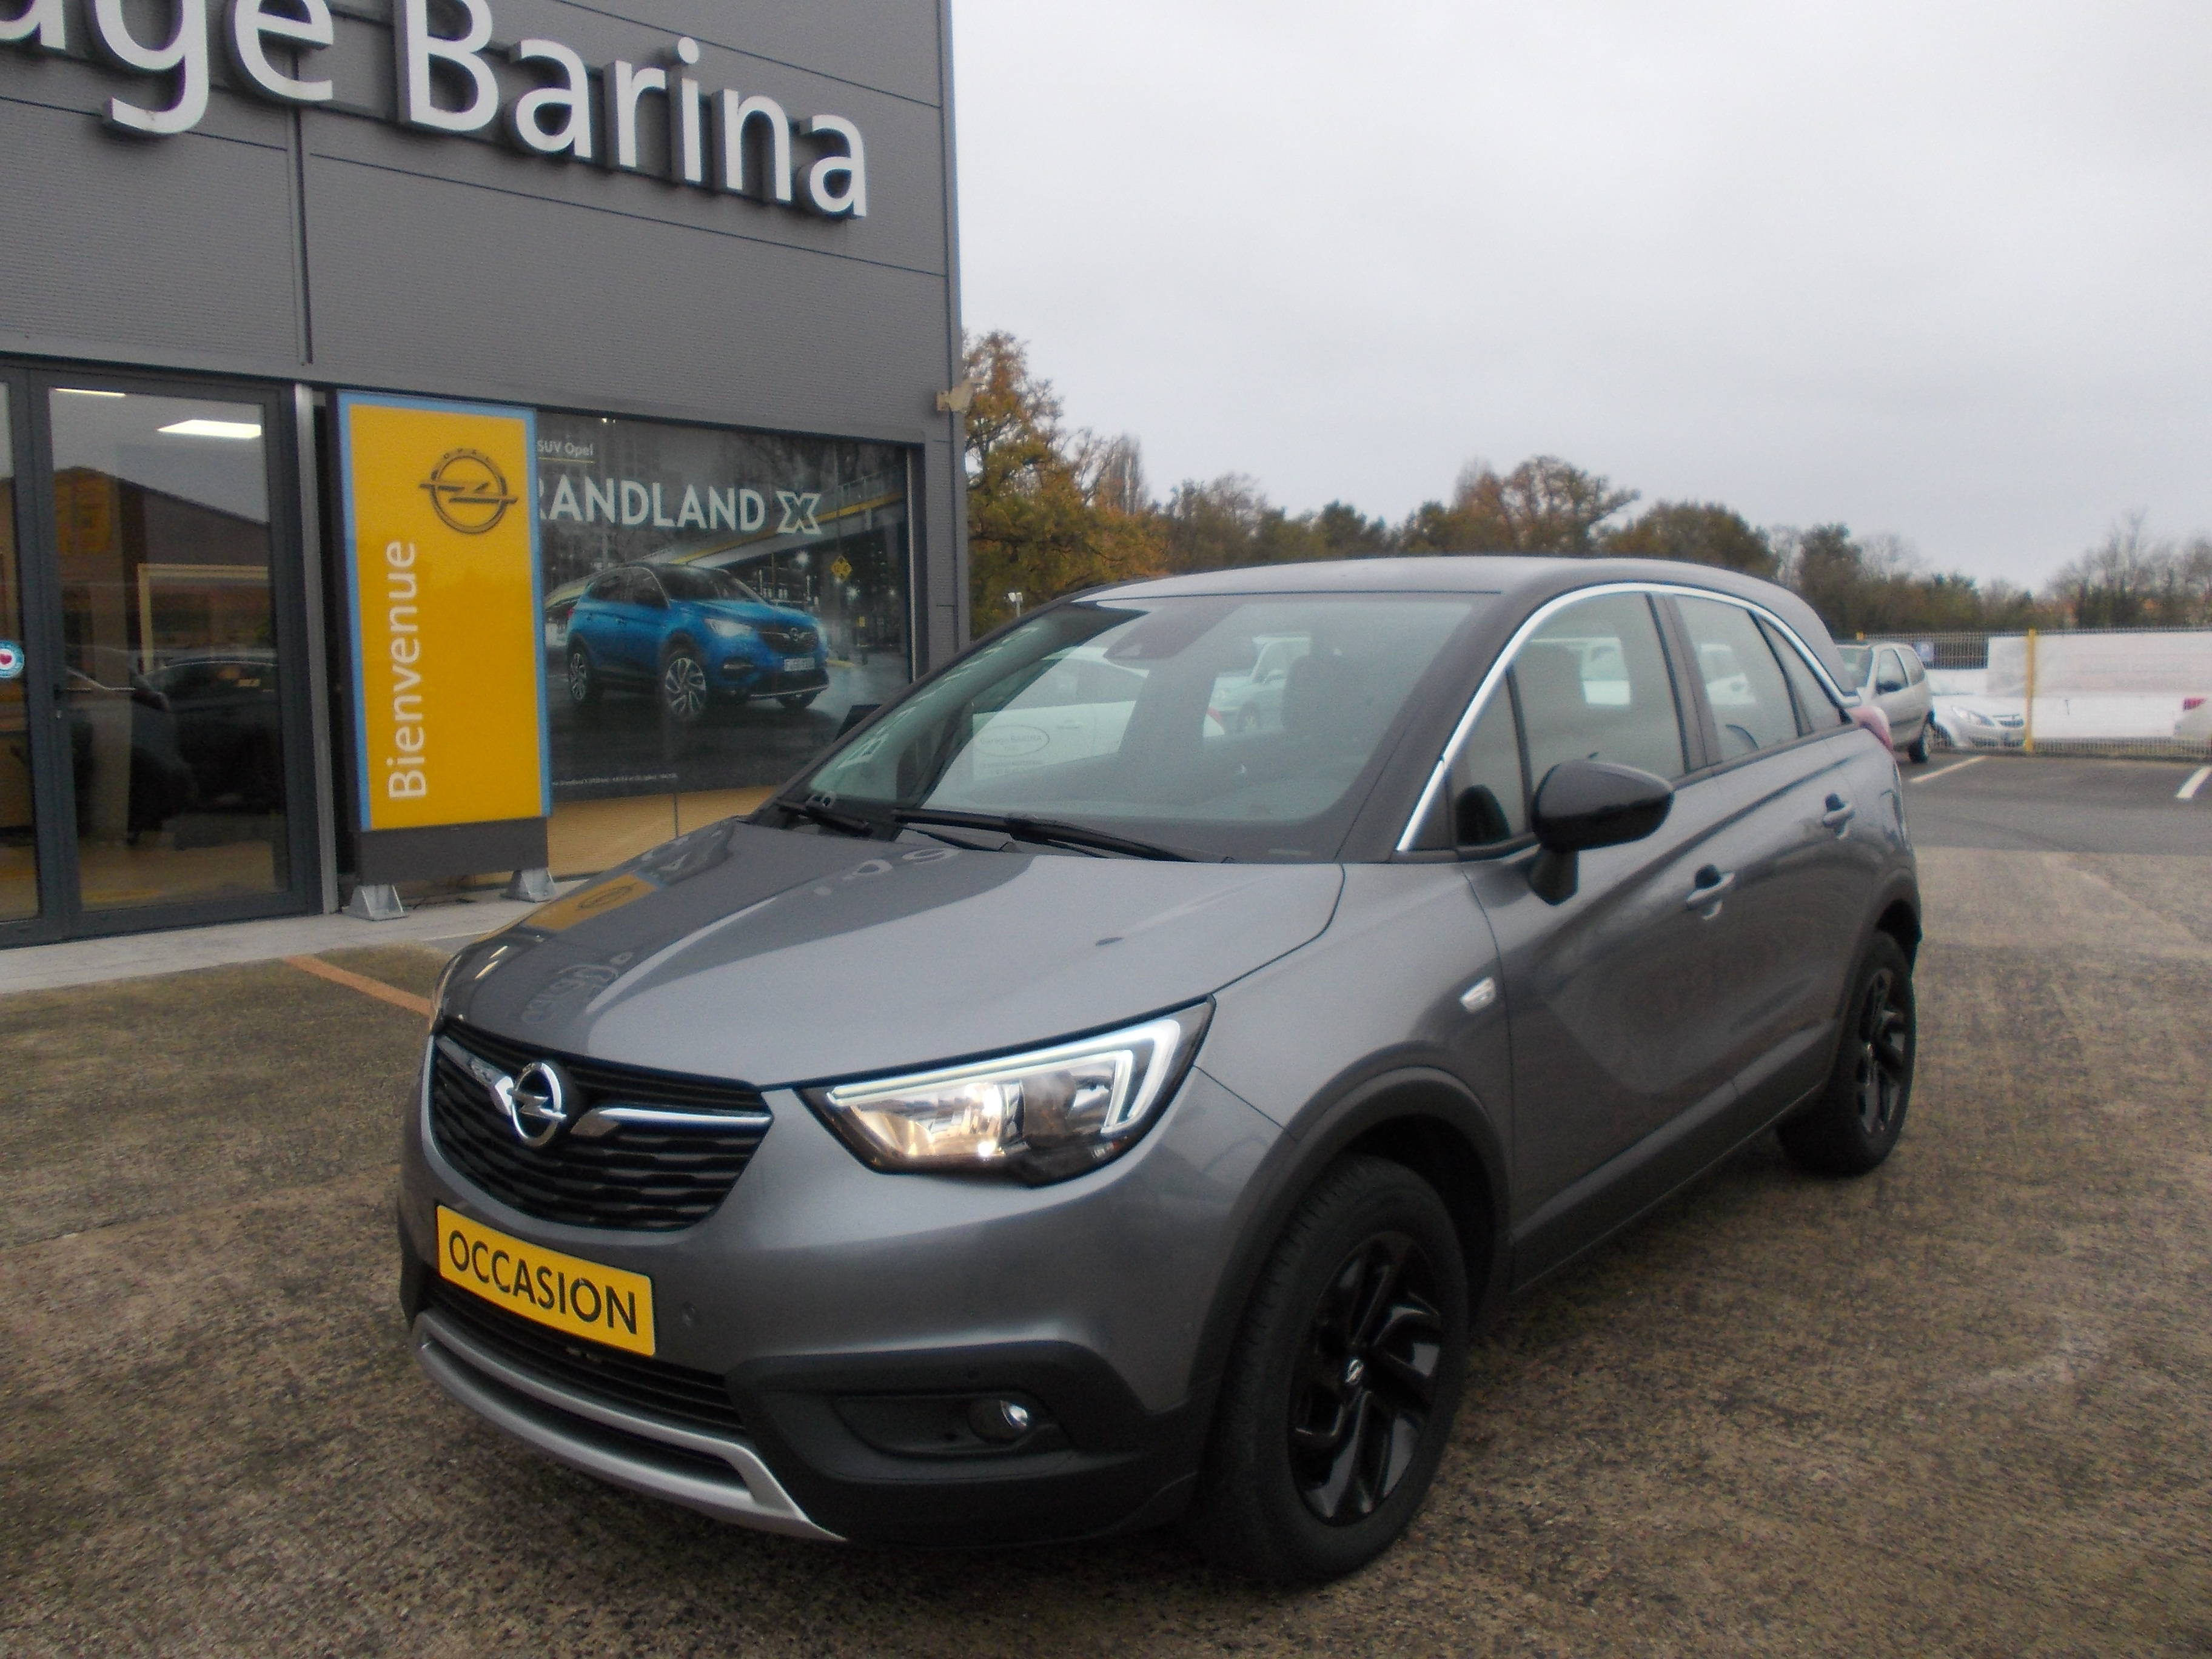 OPEL CROSSLAND X - 1.2 Turbo 130 ch Innovation